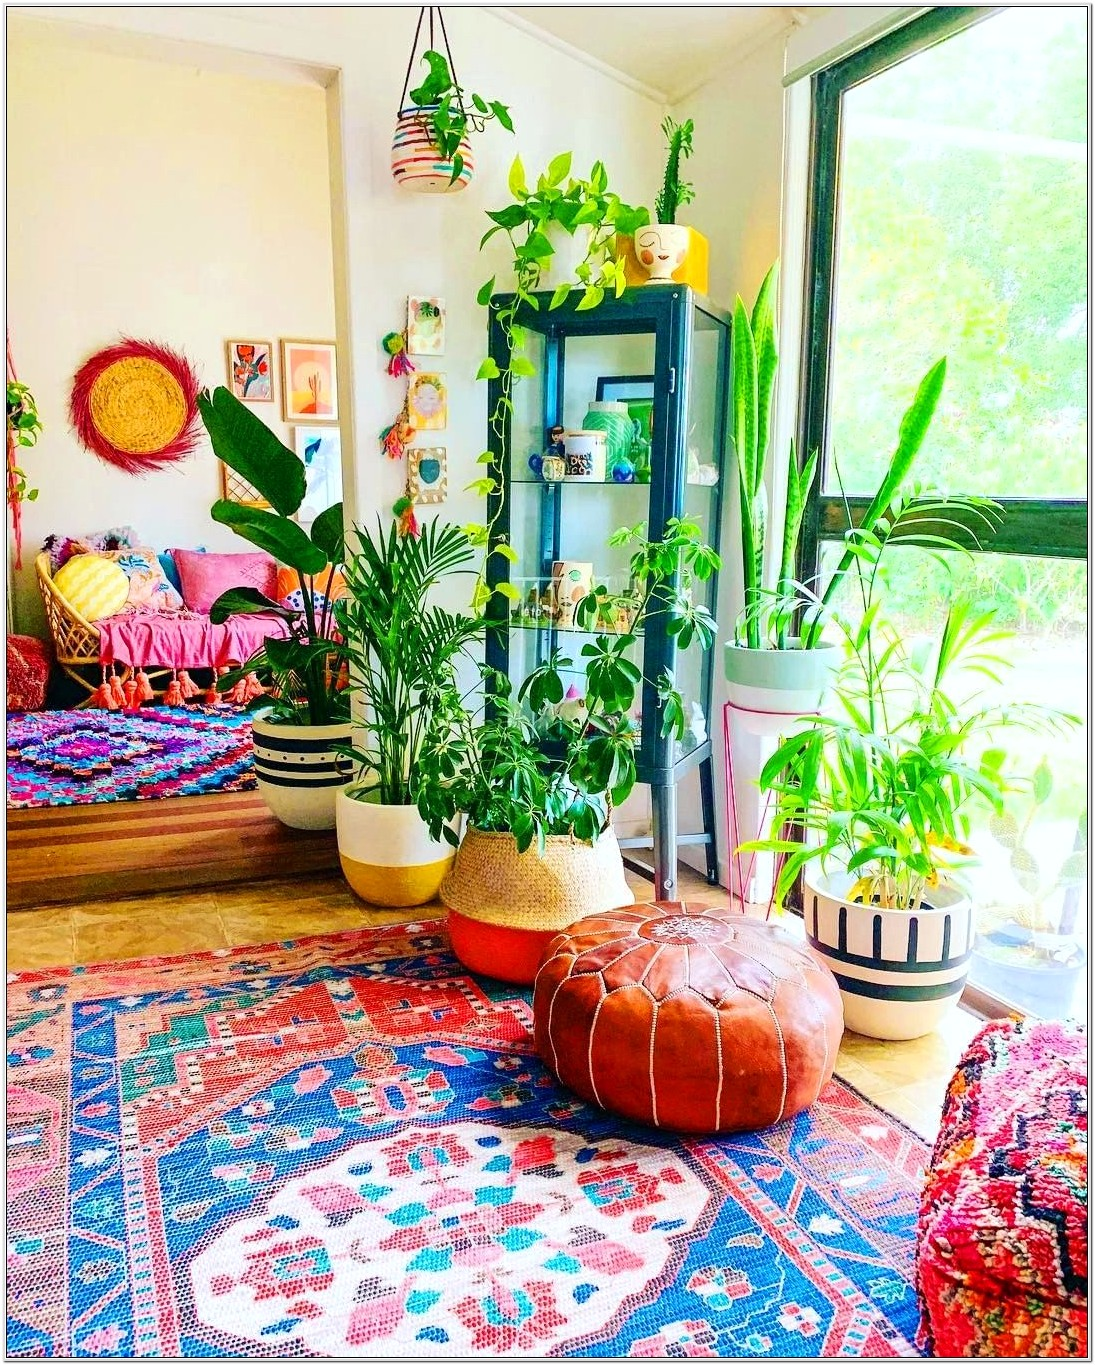 Decorative Plants For Your Bedroom